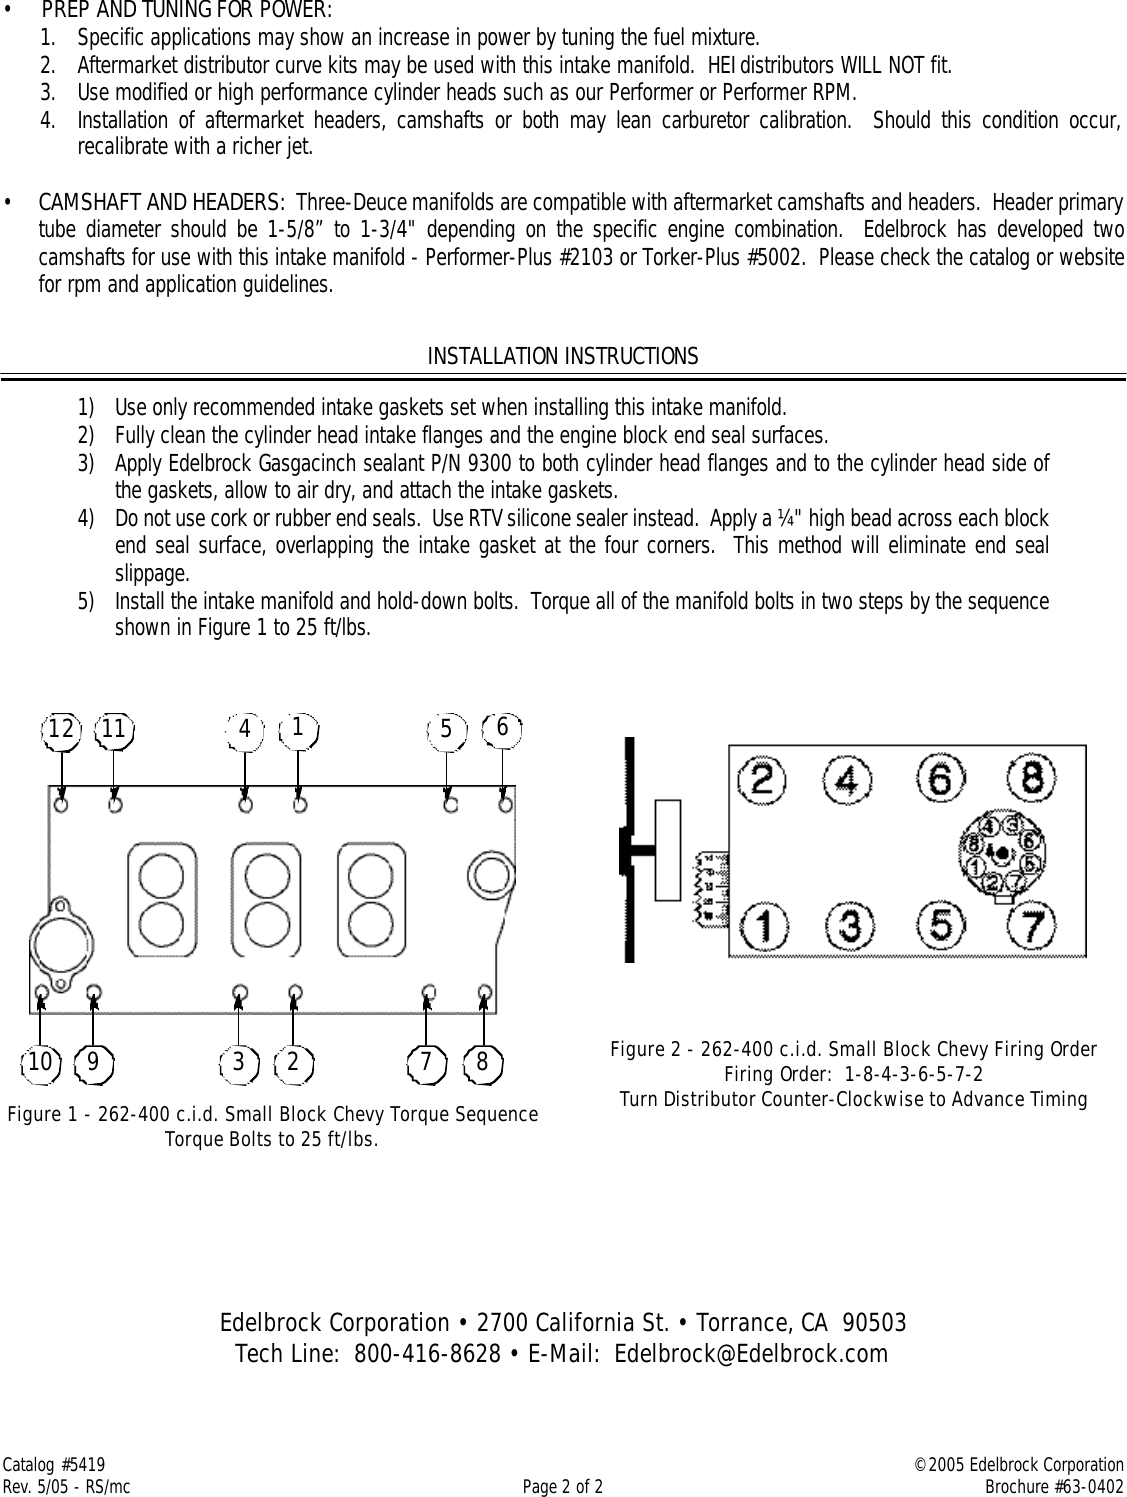 Edelbrock 5419 Users Manual C 357 B Three Deuce Intake Manifold For Chevy 400 Firing Order Page 2 Of